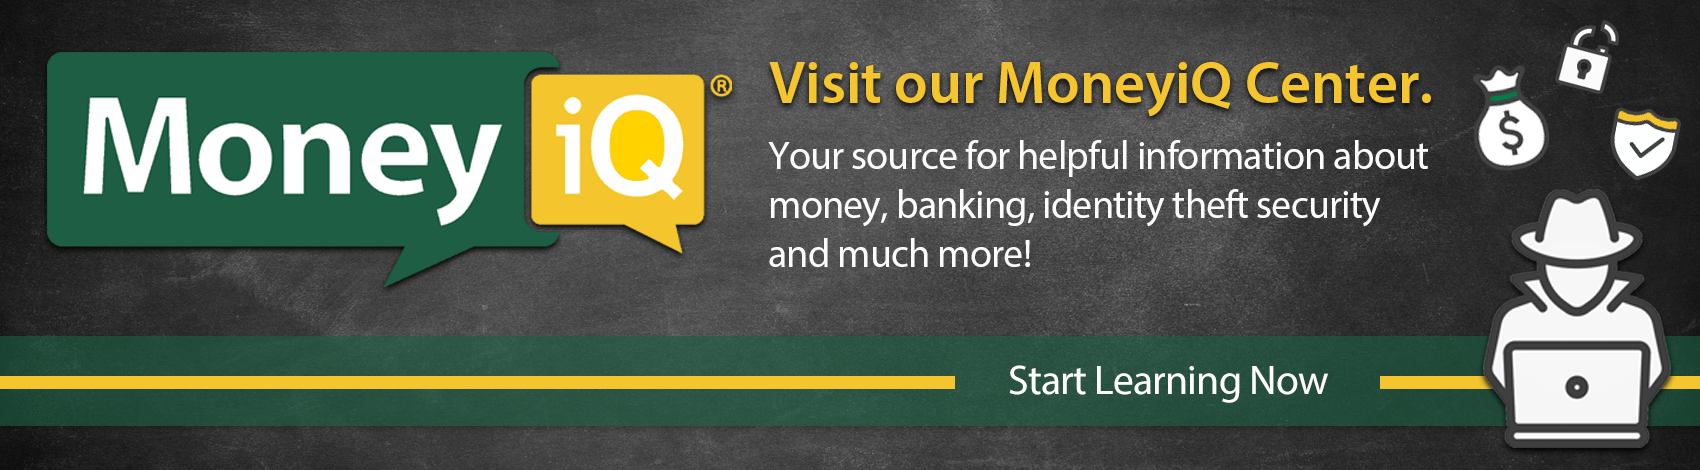 Visit Our MoneyiQ Center